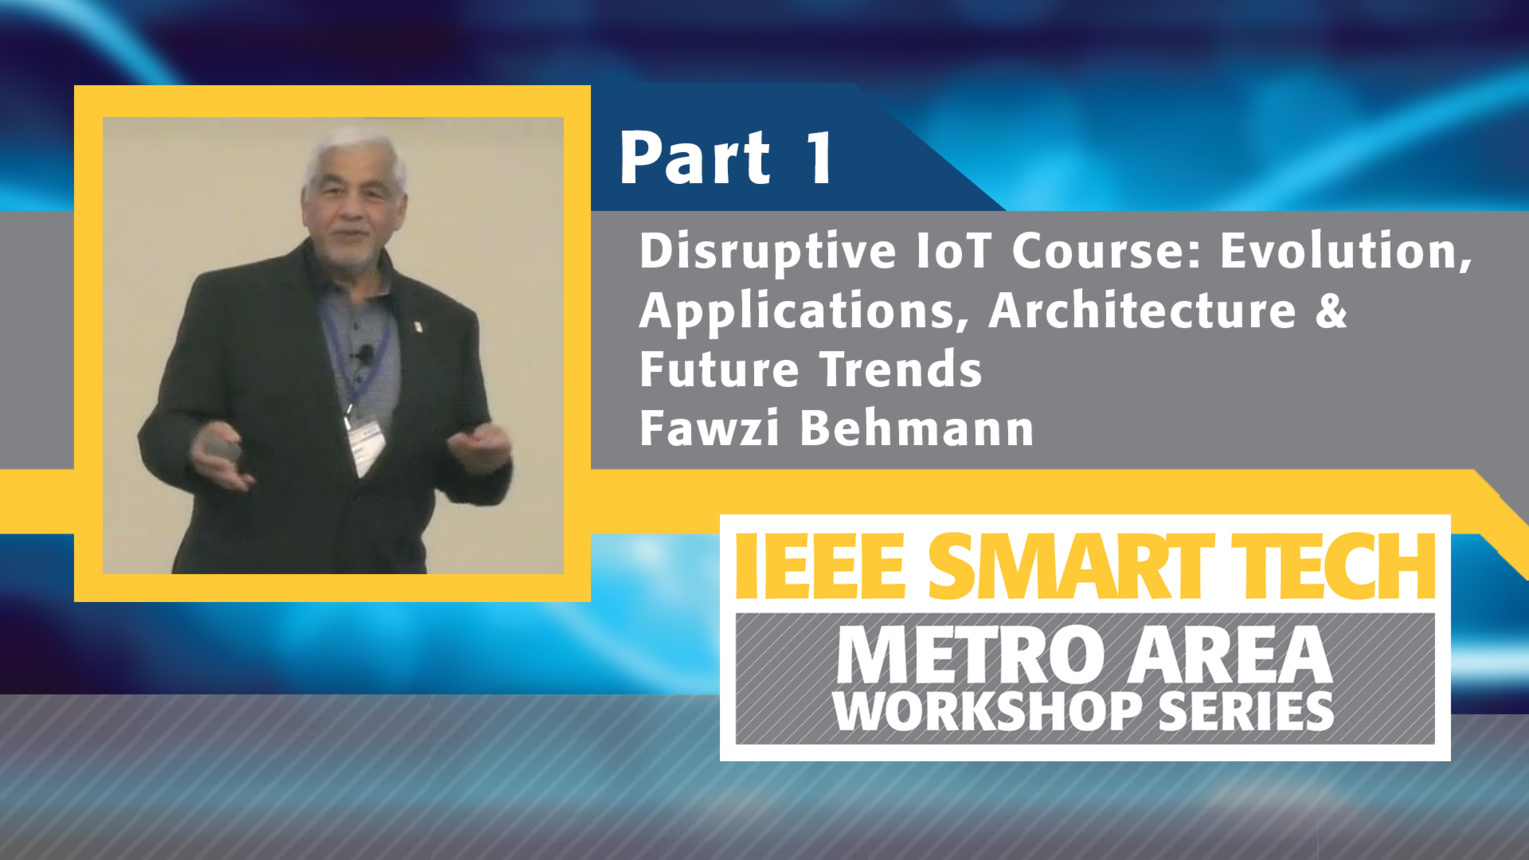 Disruptive Internet of Things course, Part 1 - IEEE Smart Tech Workshop